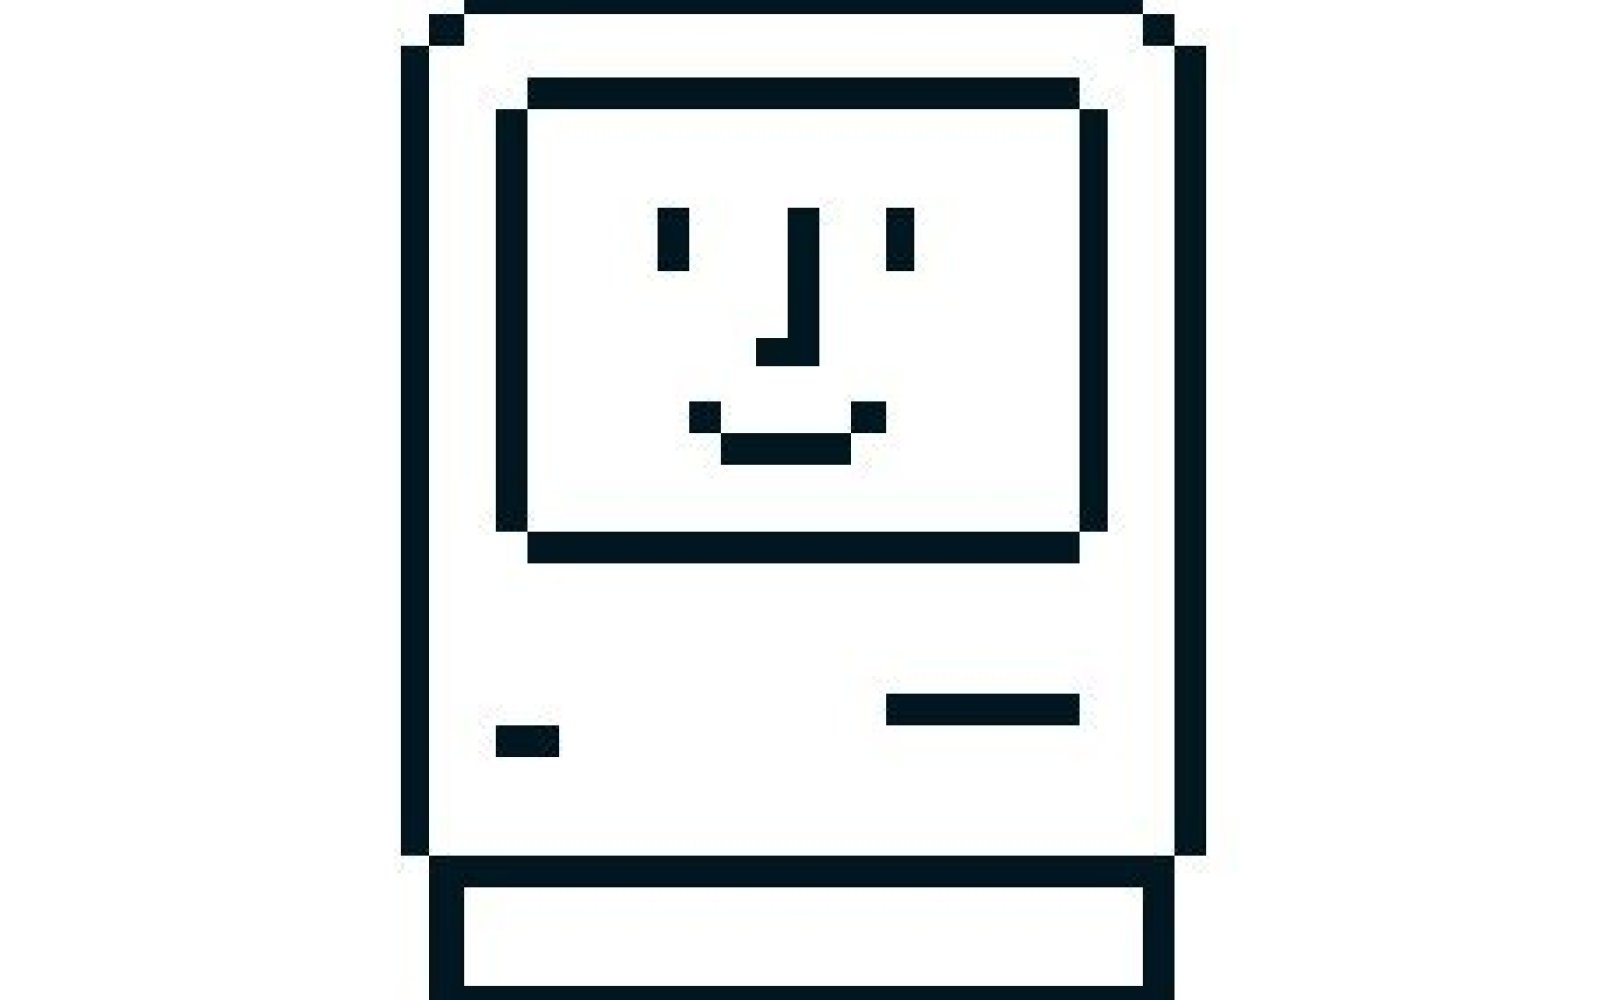 Designer of the original Mac icon (and many others) gives thumbs-up to iOS 7